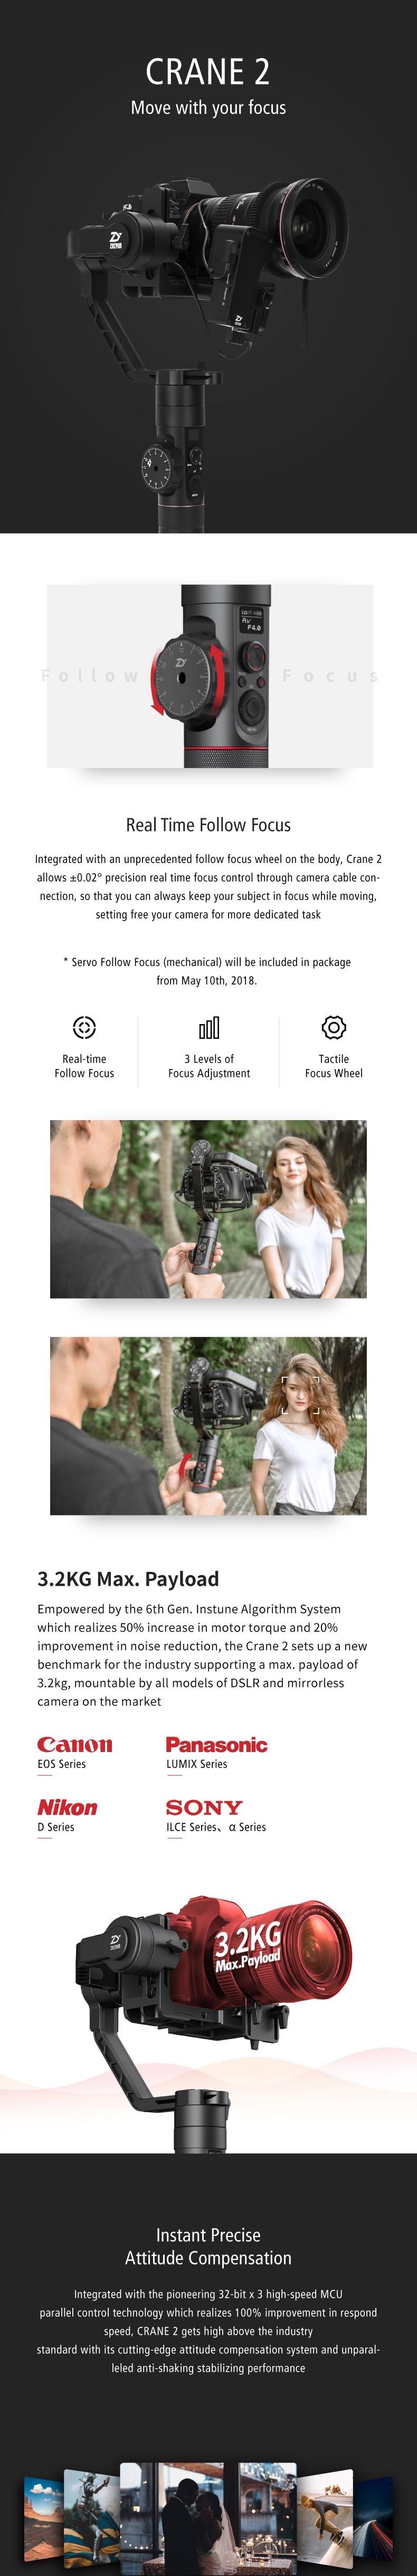 Zhiyun Crane 2(Servo Follow Focus Included)3-Axis Handheld Gimbal Stabilizer Wireless Remote 7lb Payload Display 18H Runtime666